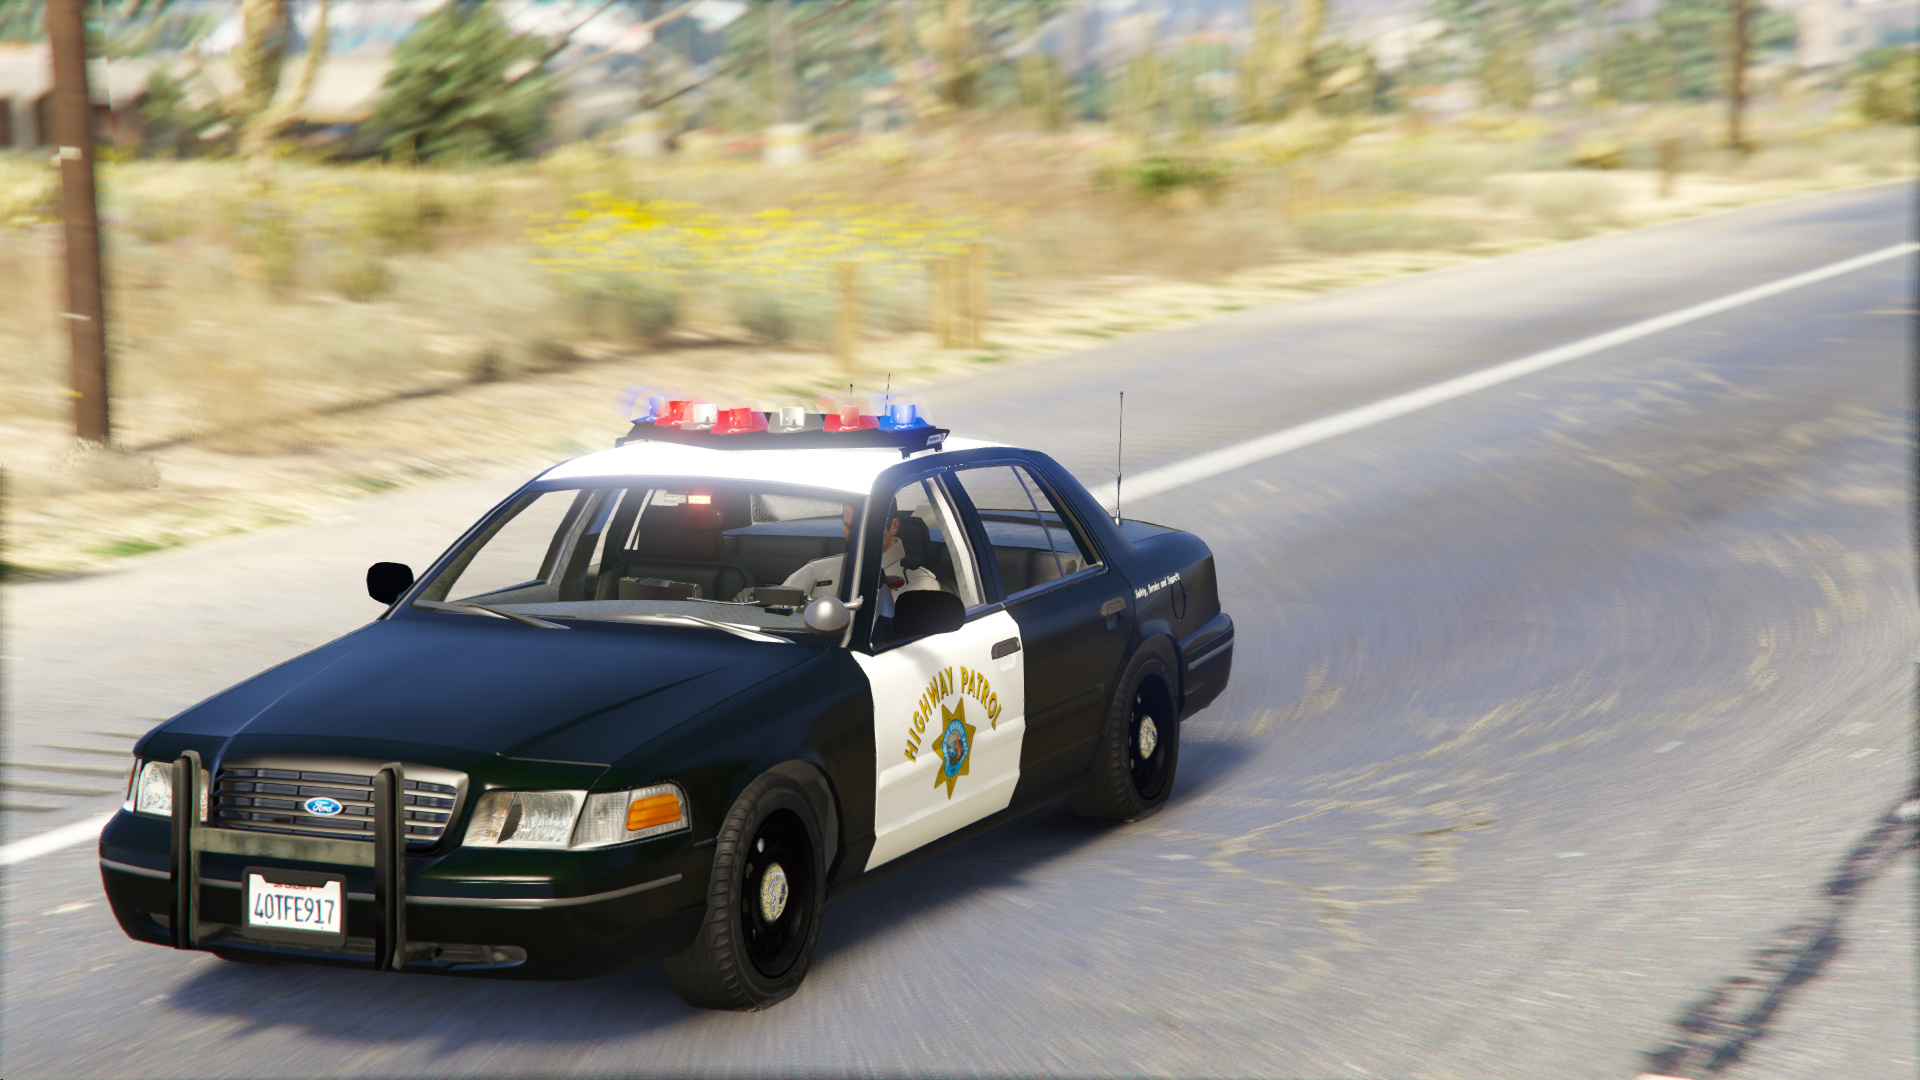 Chp cvpi with fs vector lightbar gta5 mods 0b066c gta5 2015 09 10 13 39 10 591 aloadofball Gallery